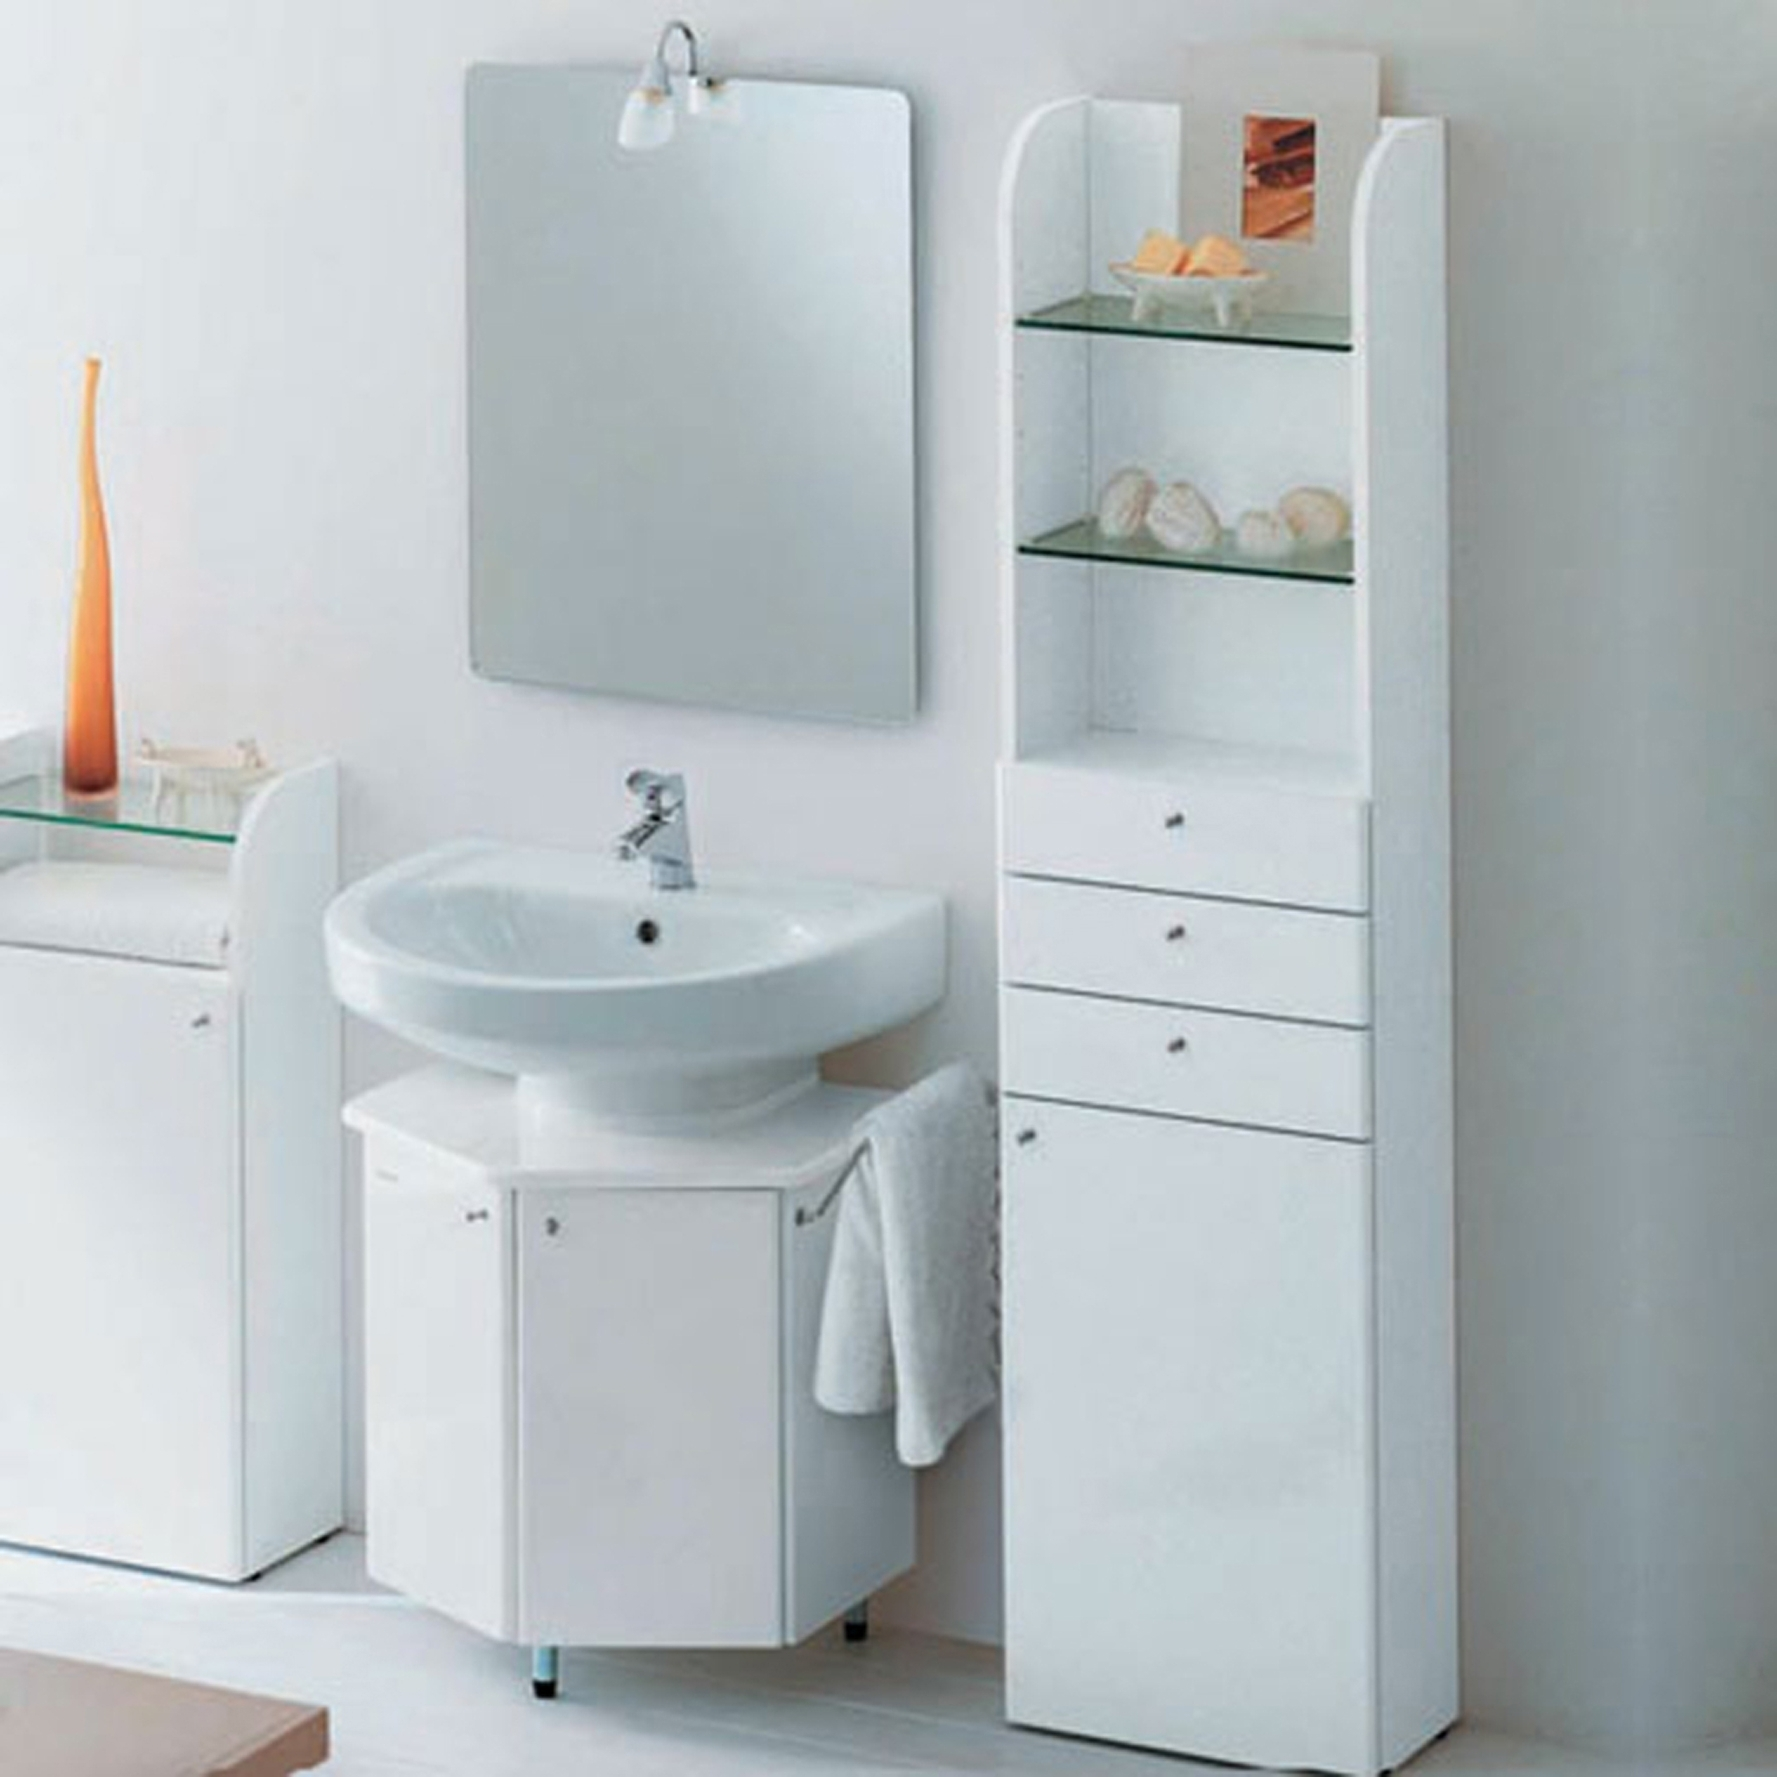 Permalink to Bathroom Cabinet For Small Bathrooms